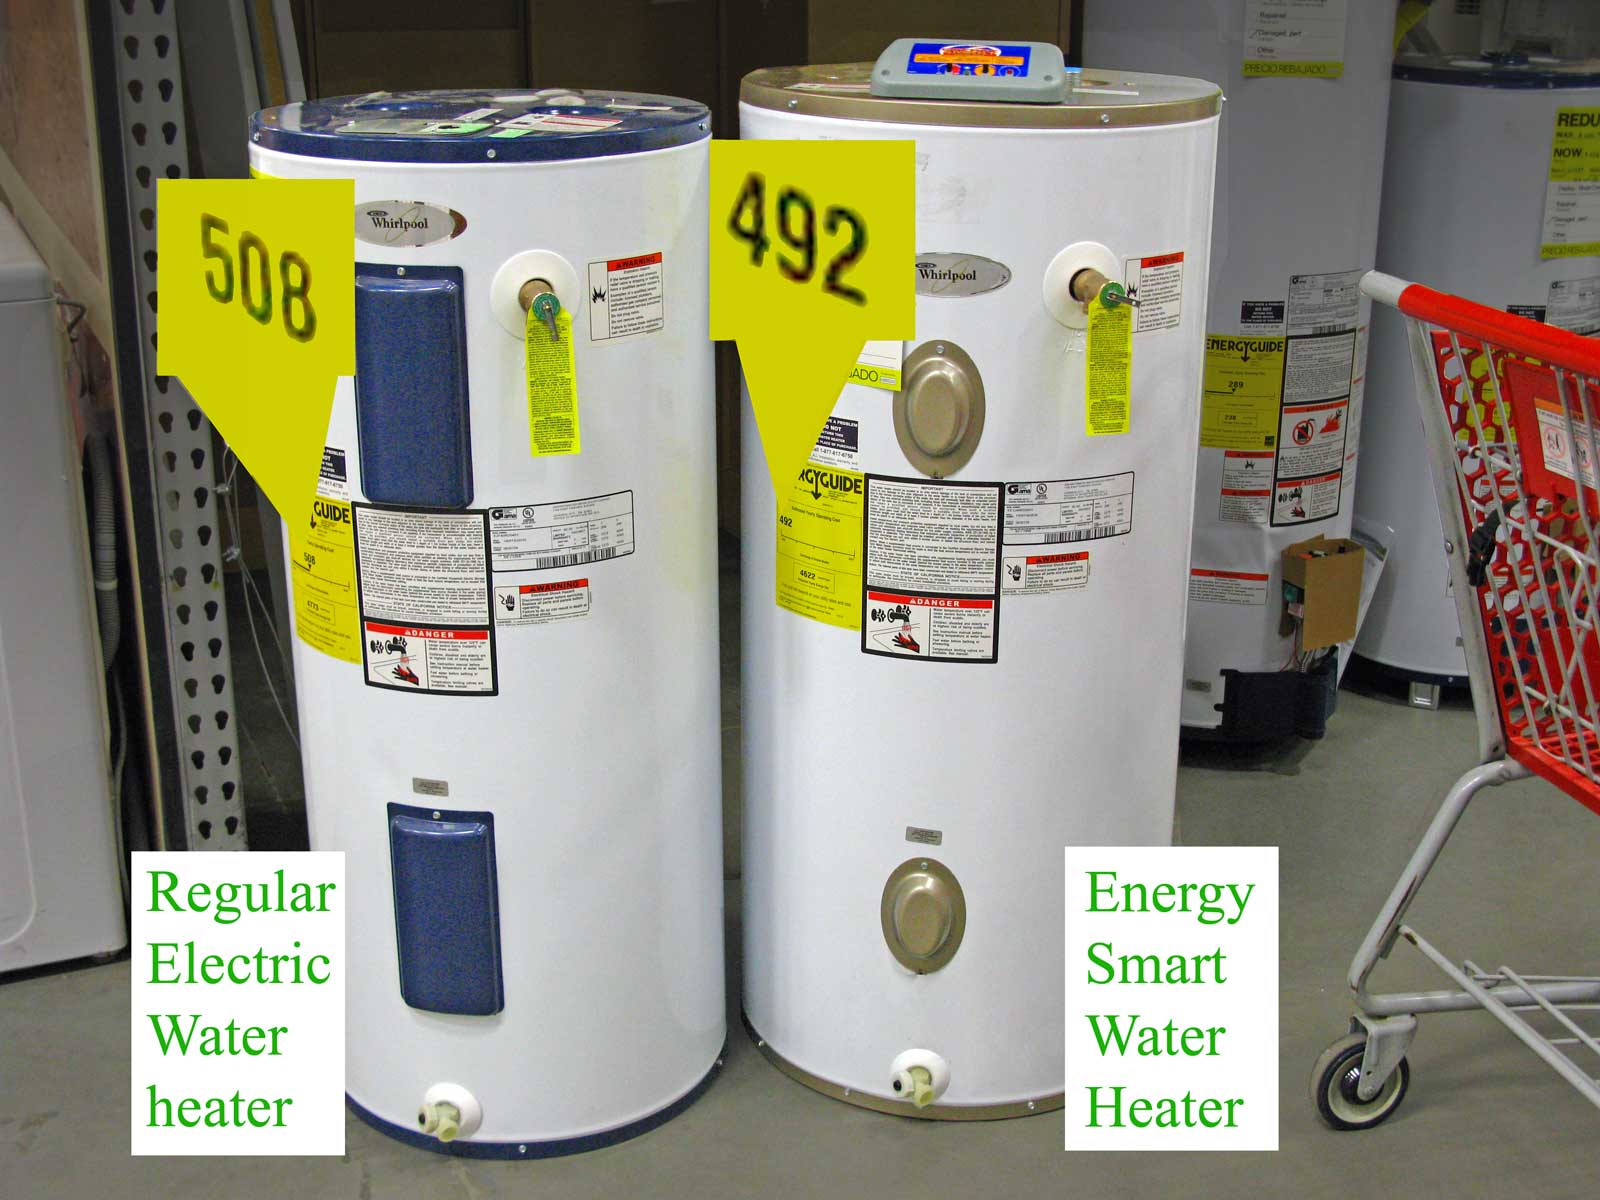 hight resolution of whirlpool electric water heater diagrams wiring diagram imgwhirlpool energy smart electric water heater whirlpool electric water